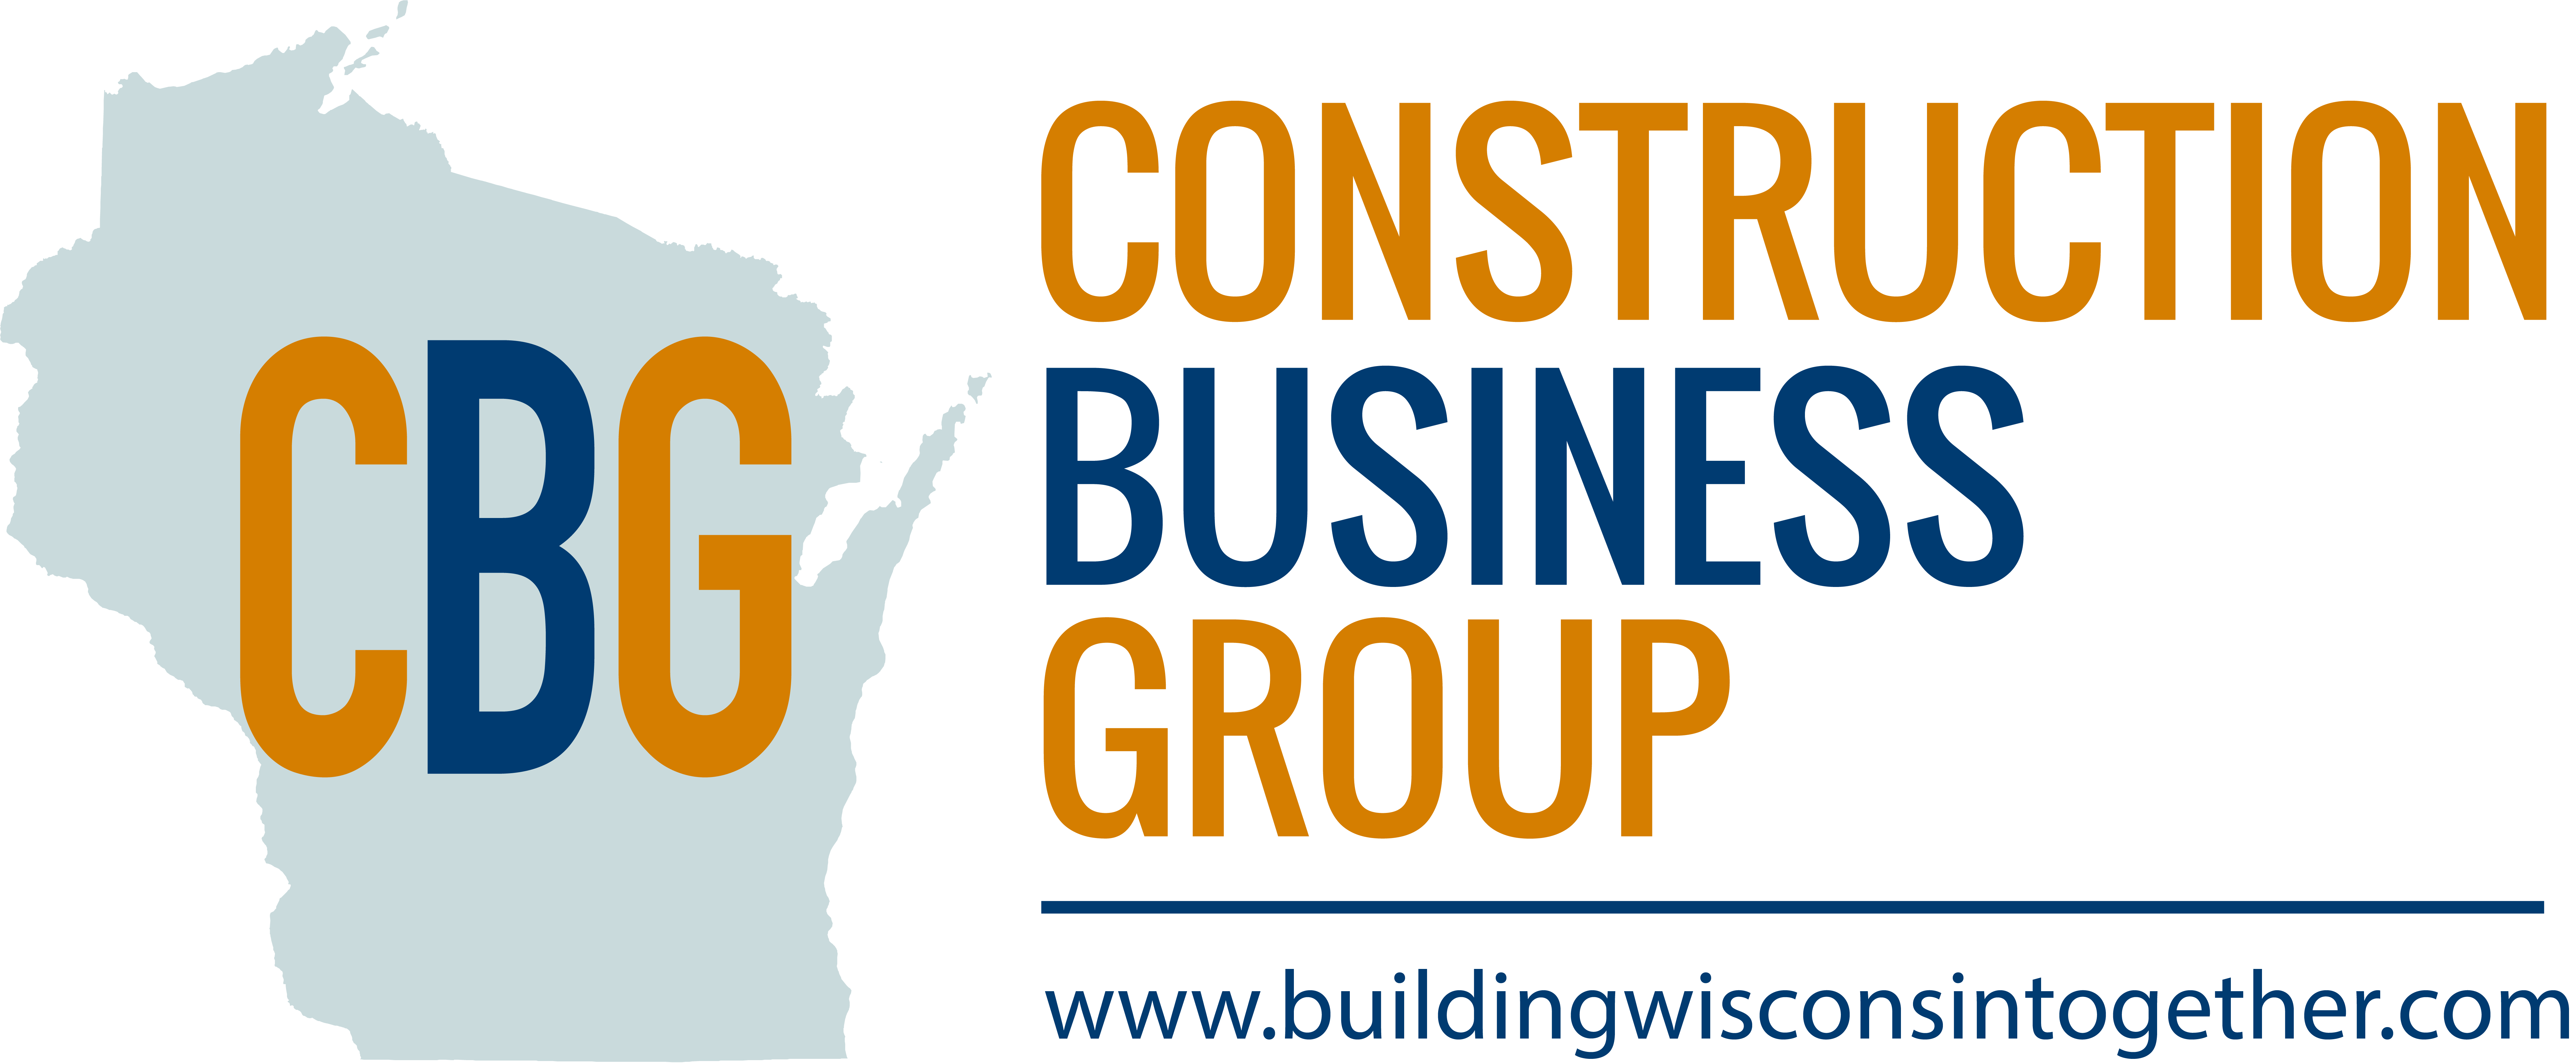 Construction Business Group of Wisconsin